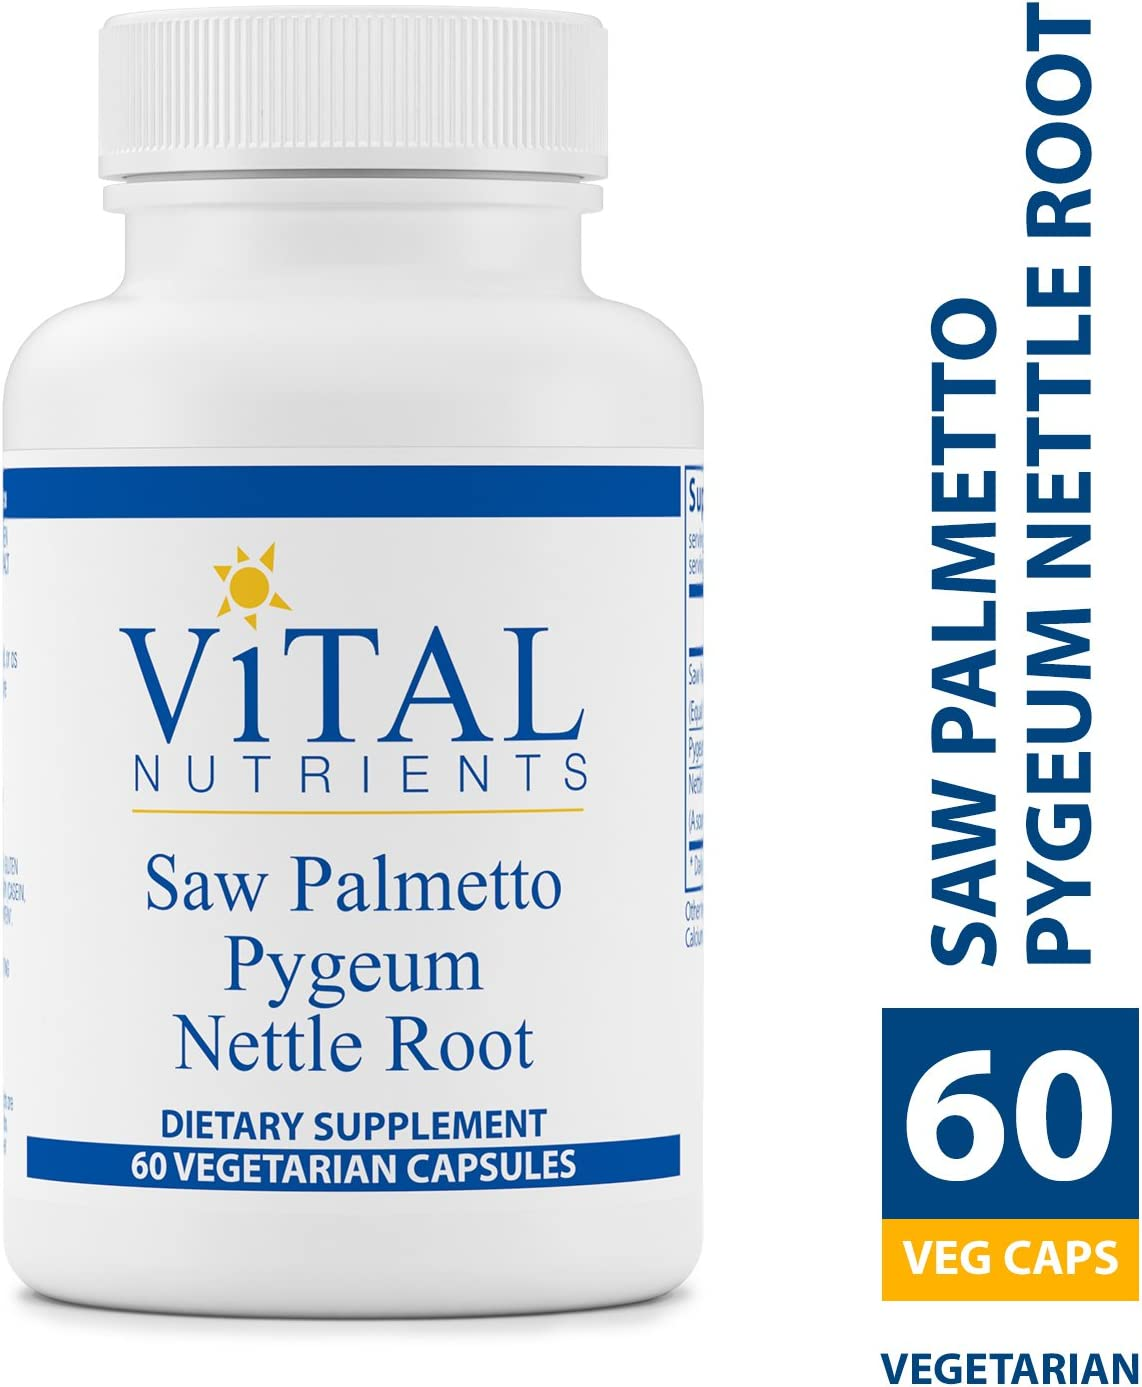 Vital Nutrients – Saw Palmetto Pygeum Nettle Root – Supports Healthy Prostate Function – 60 Capsules per Bottle